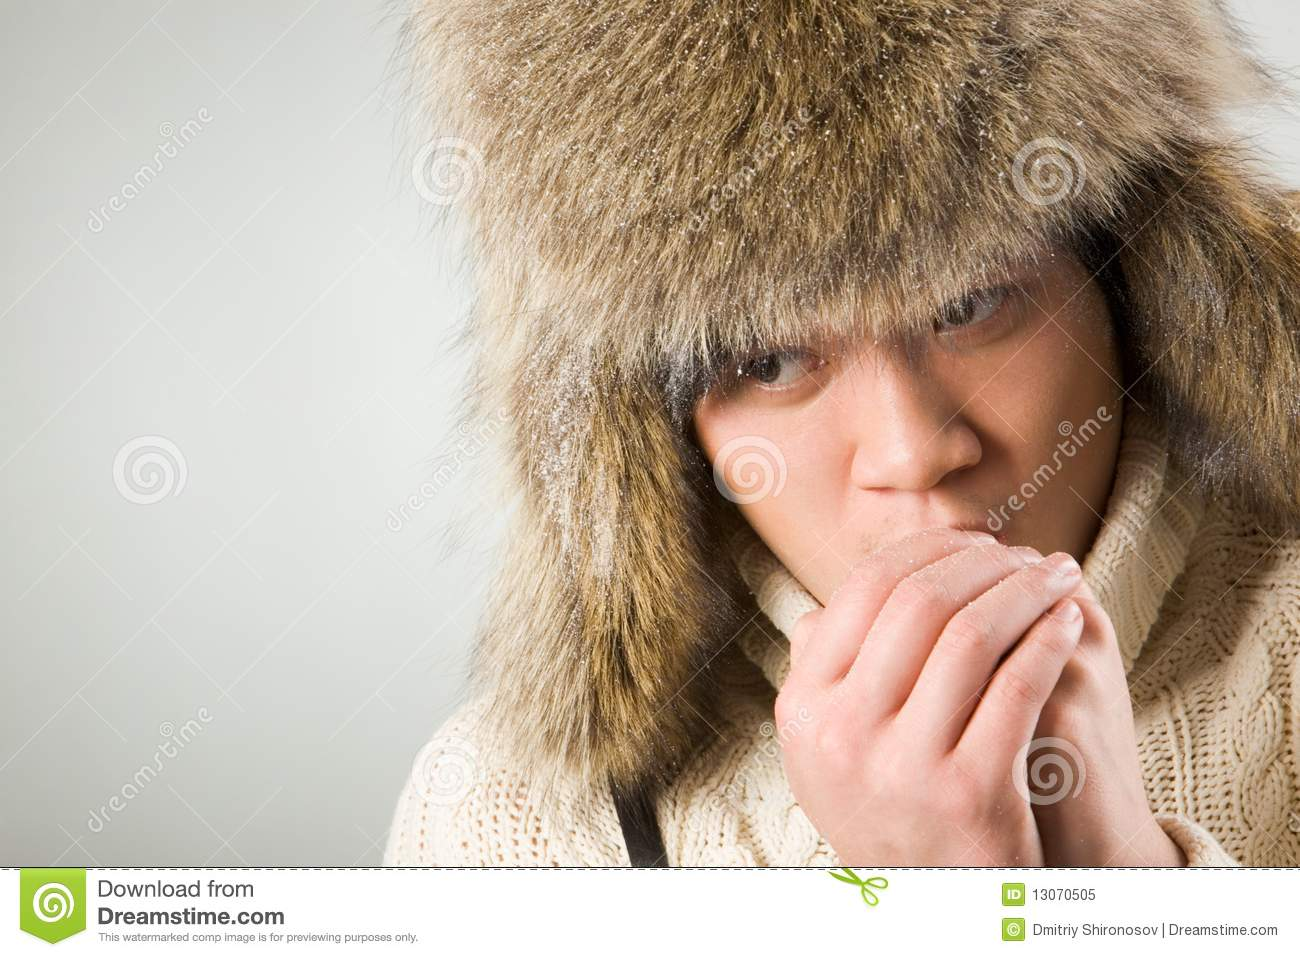 L hiver froid